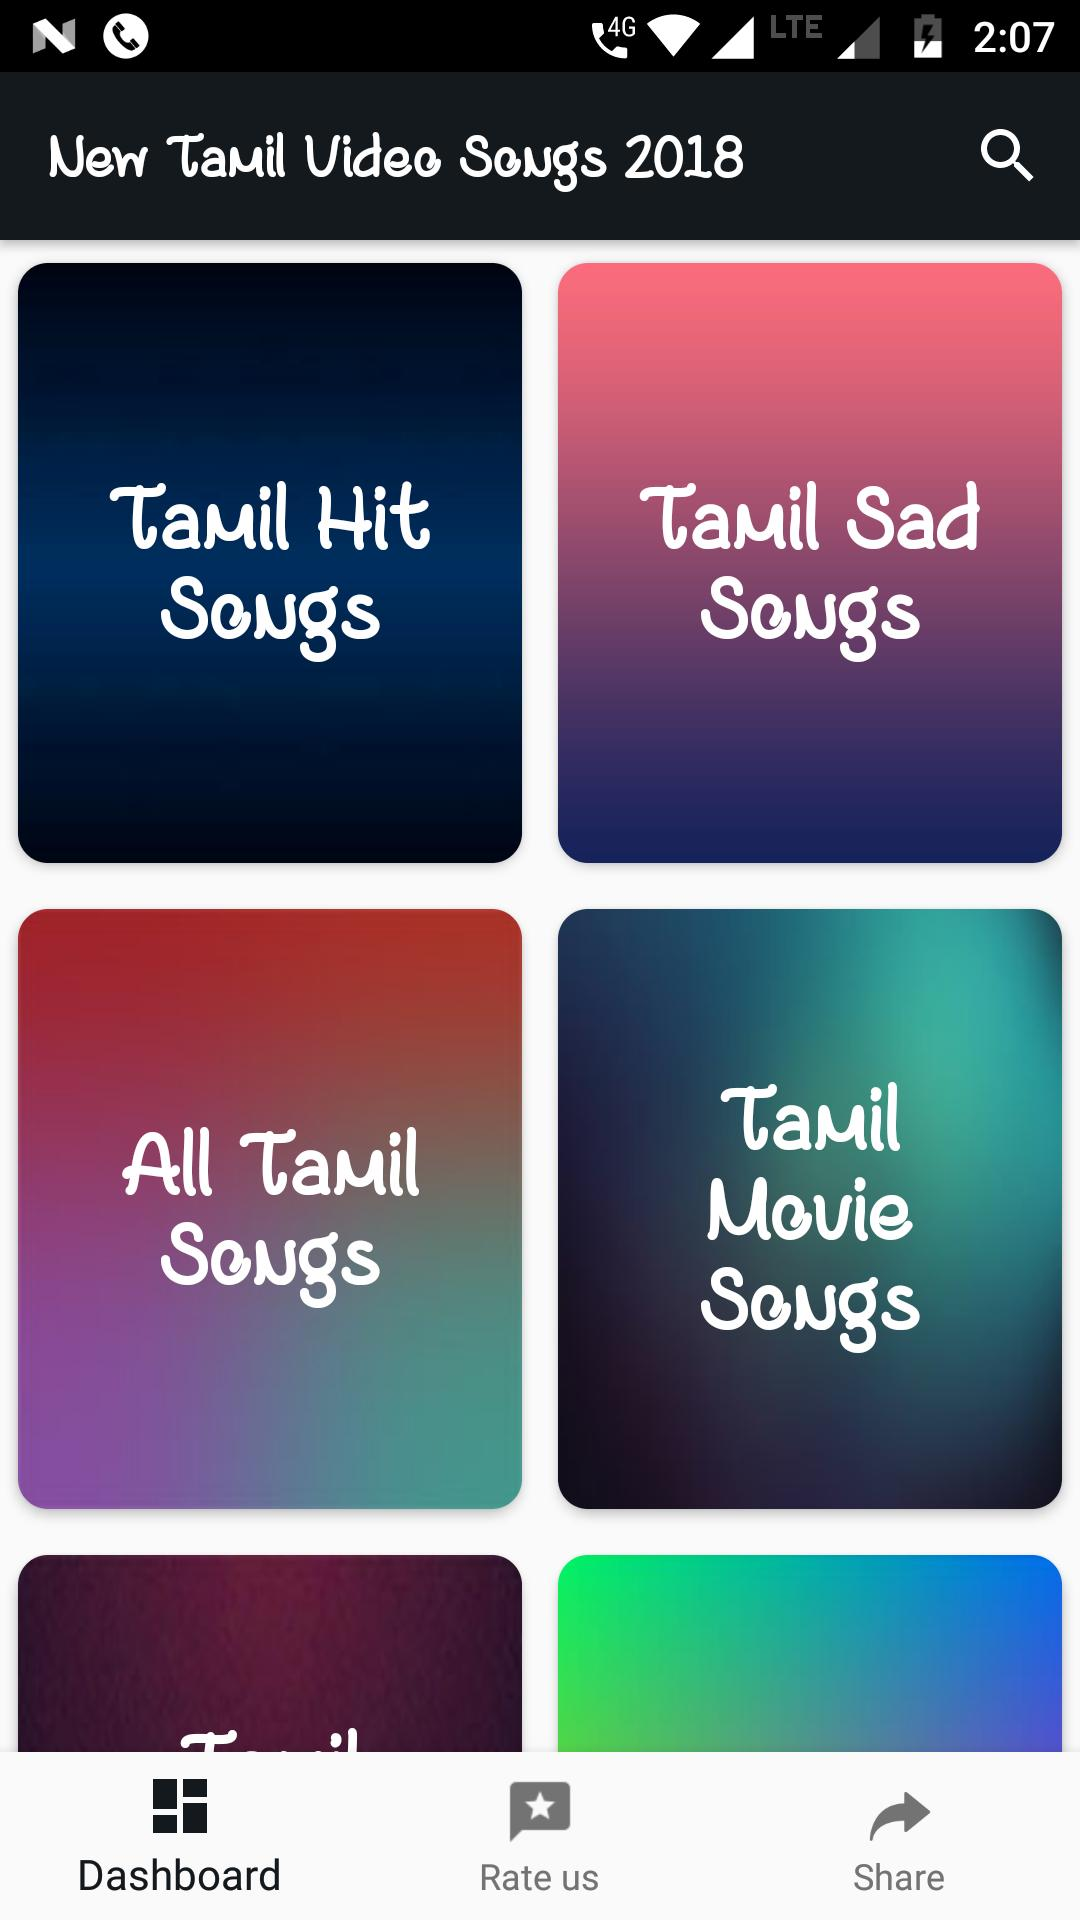 TAMIL SONGS VIDEOS 2018 : New Tamil Movies Songs for Android - APK